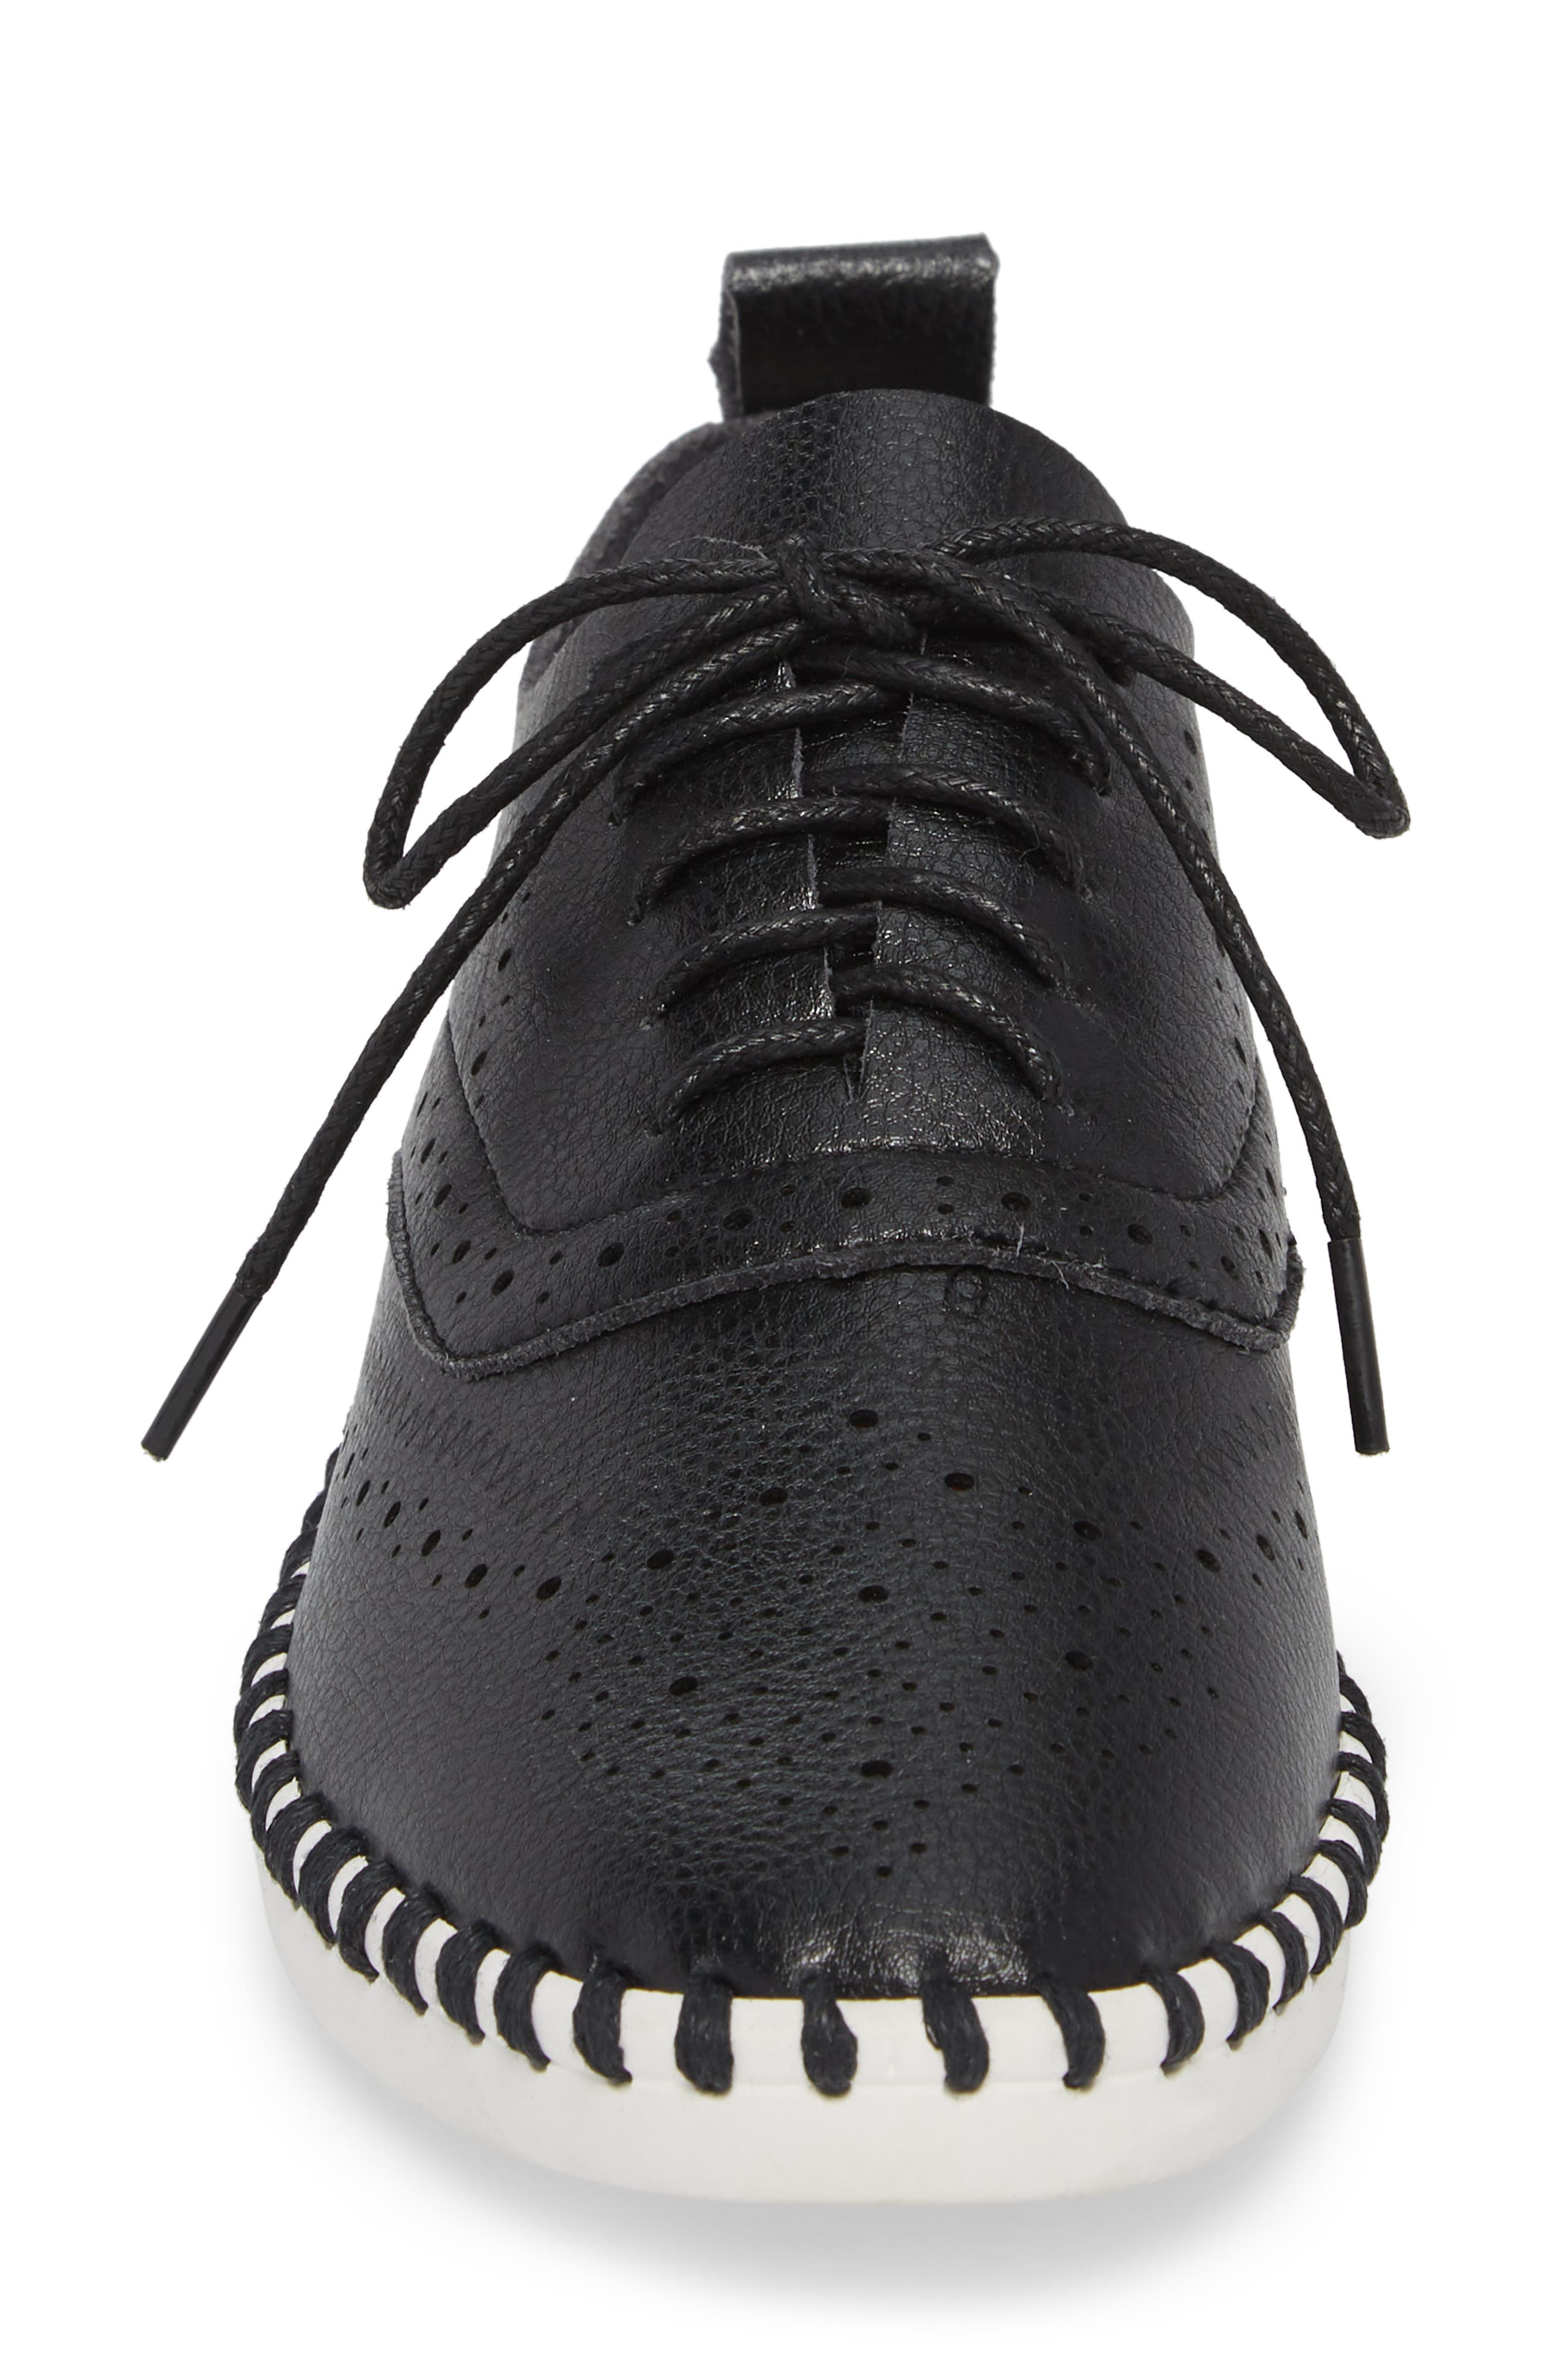 Salinas Waterproof Brogue Lace-Up Sneaker,                             Alternate thumbnail 4, color,                             BLACK FAUX LEATHER